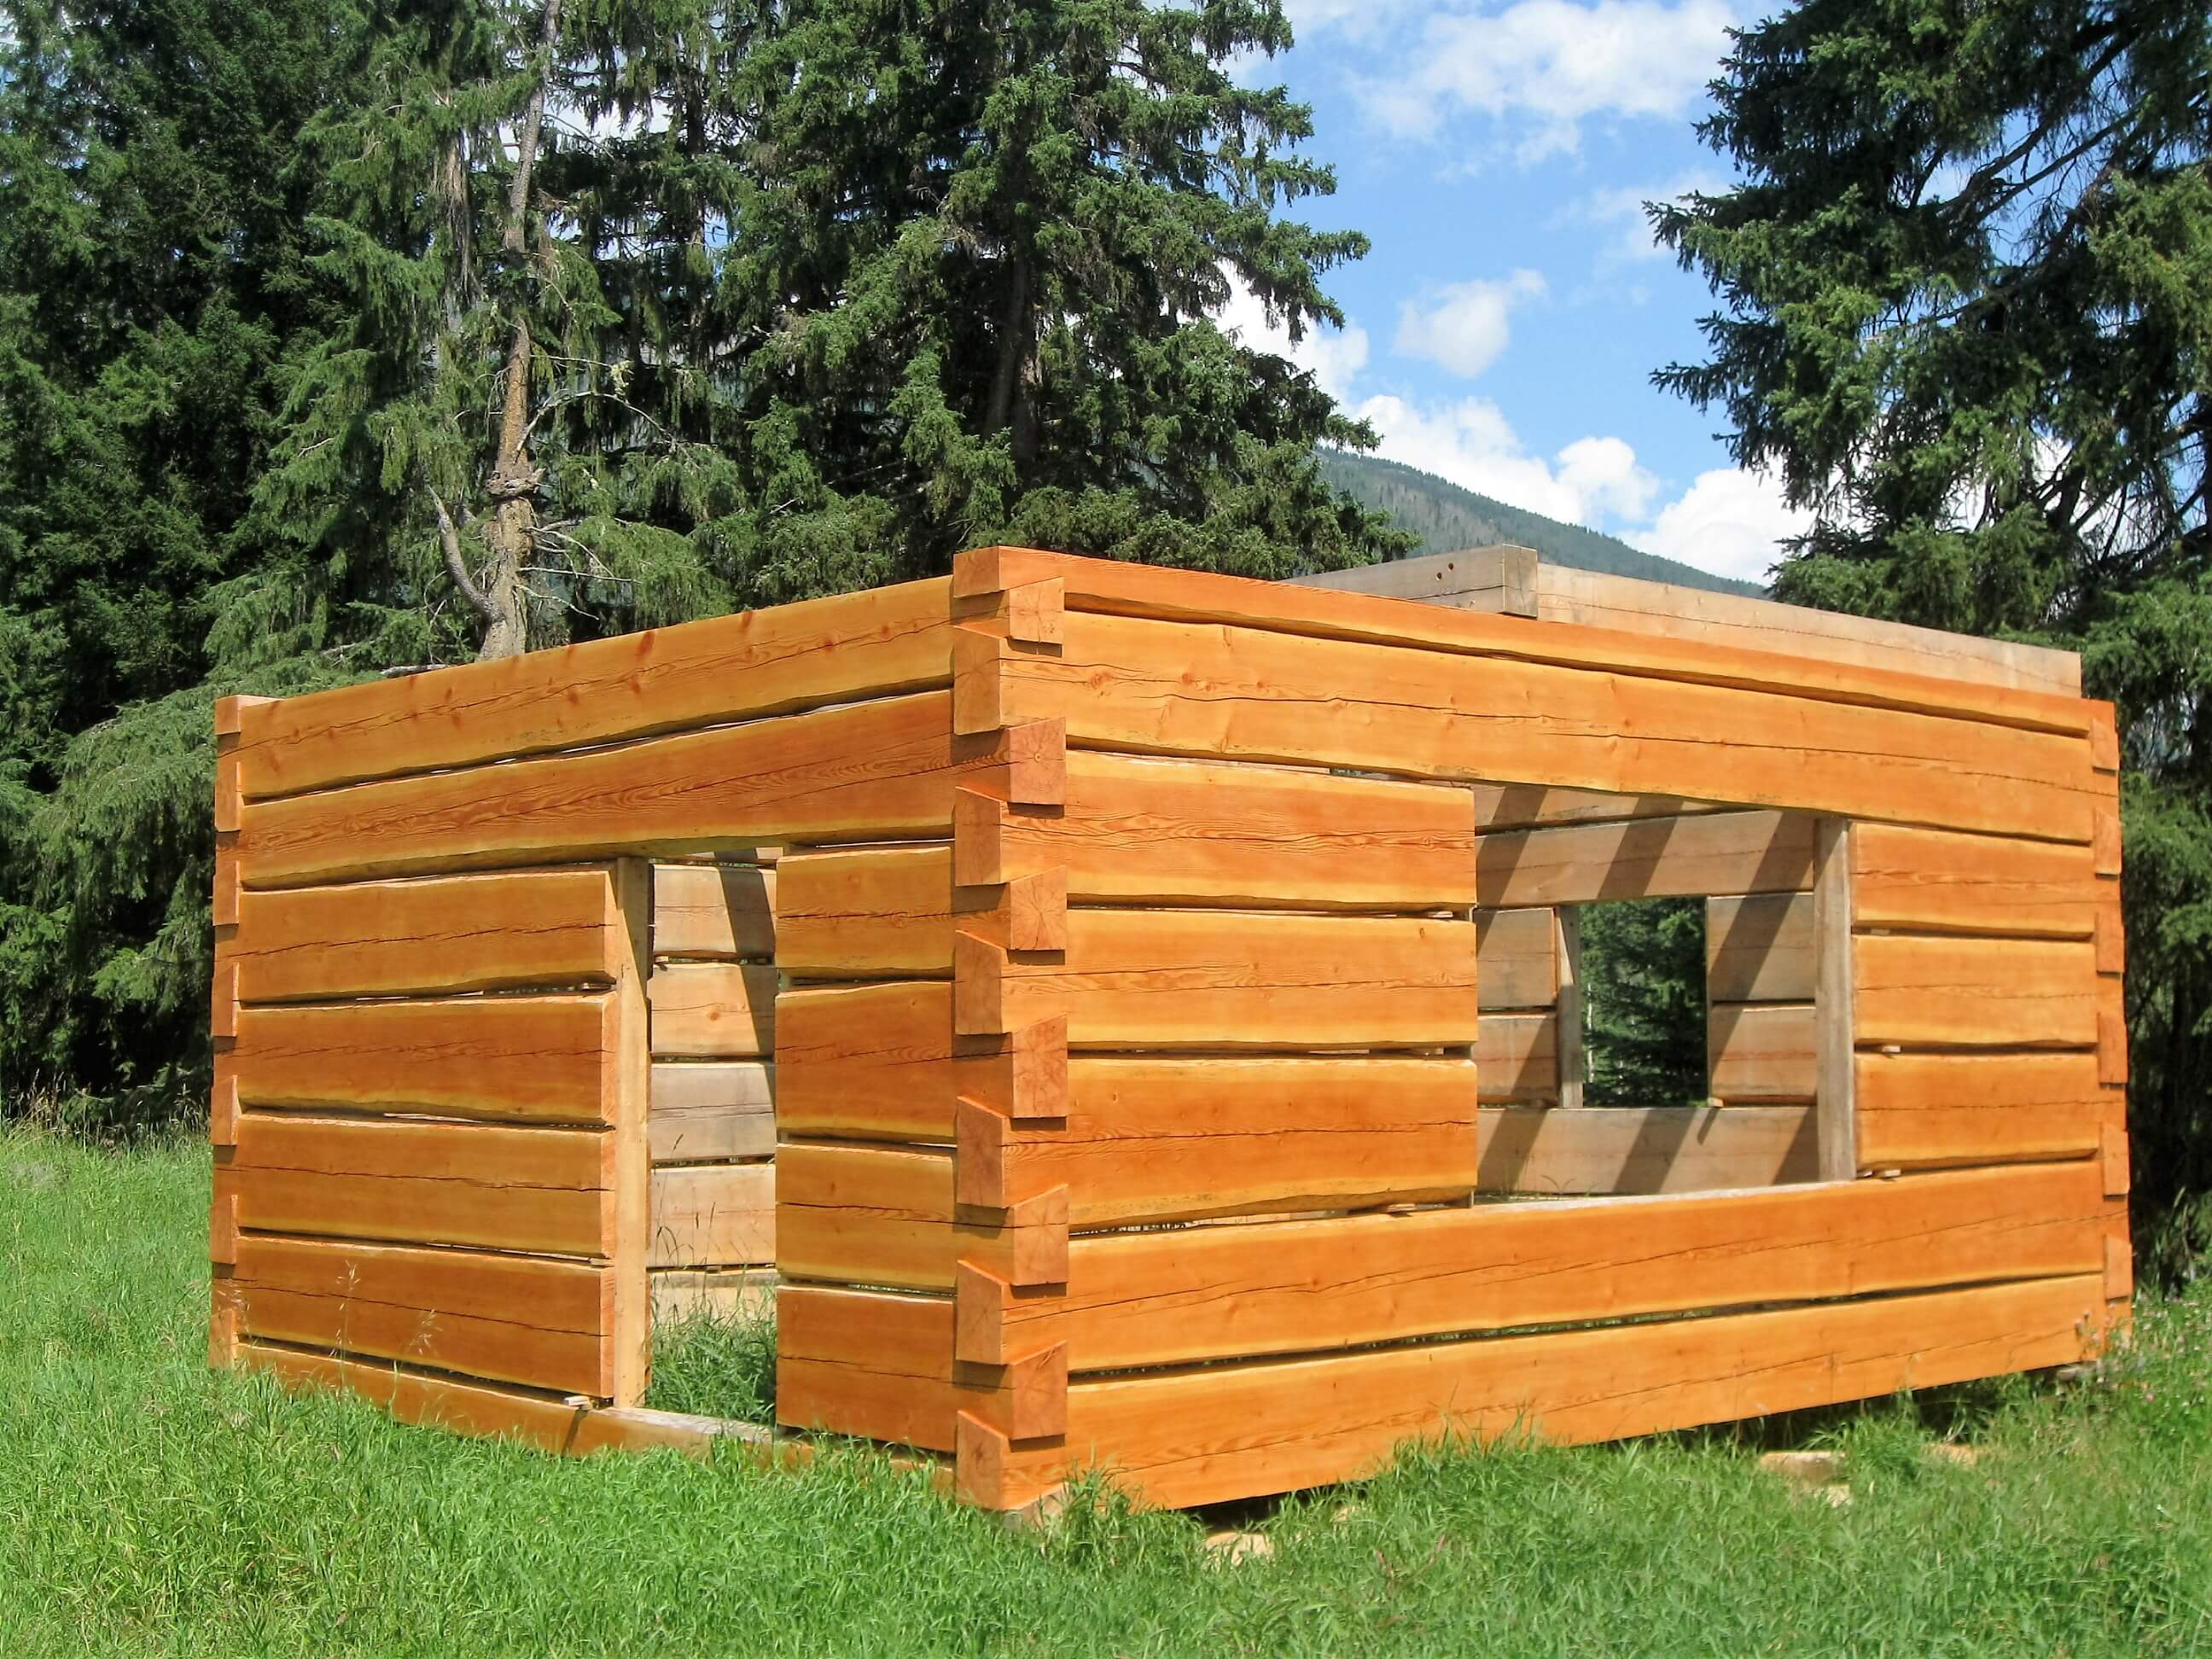 Wonderful image of Learn To Build Your Own Log Cabin with #1566B6 color and 2592x1944 pixels